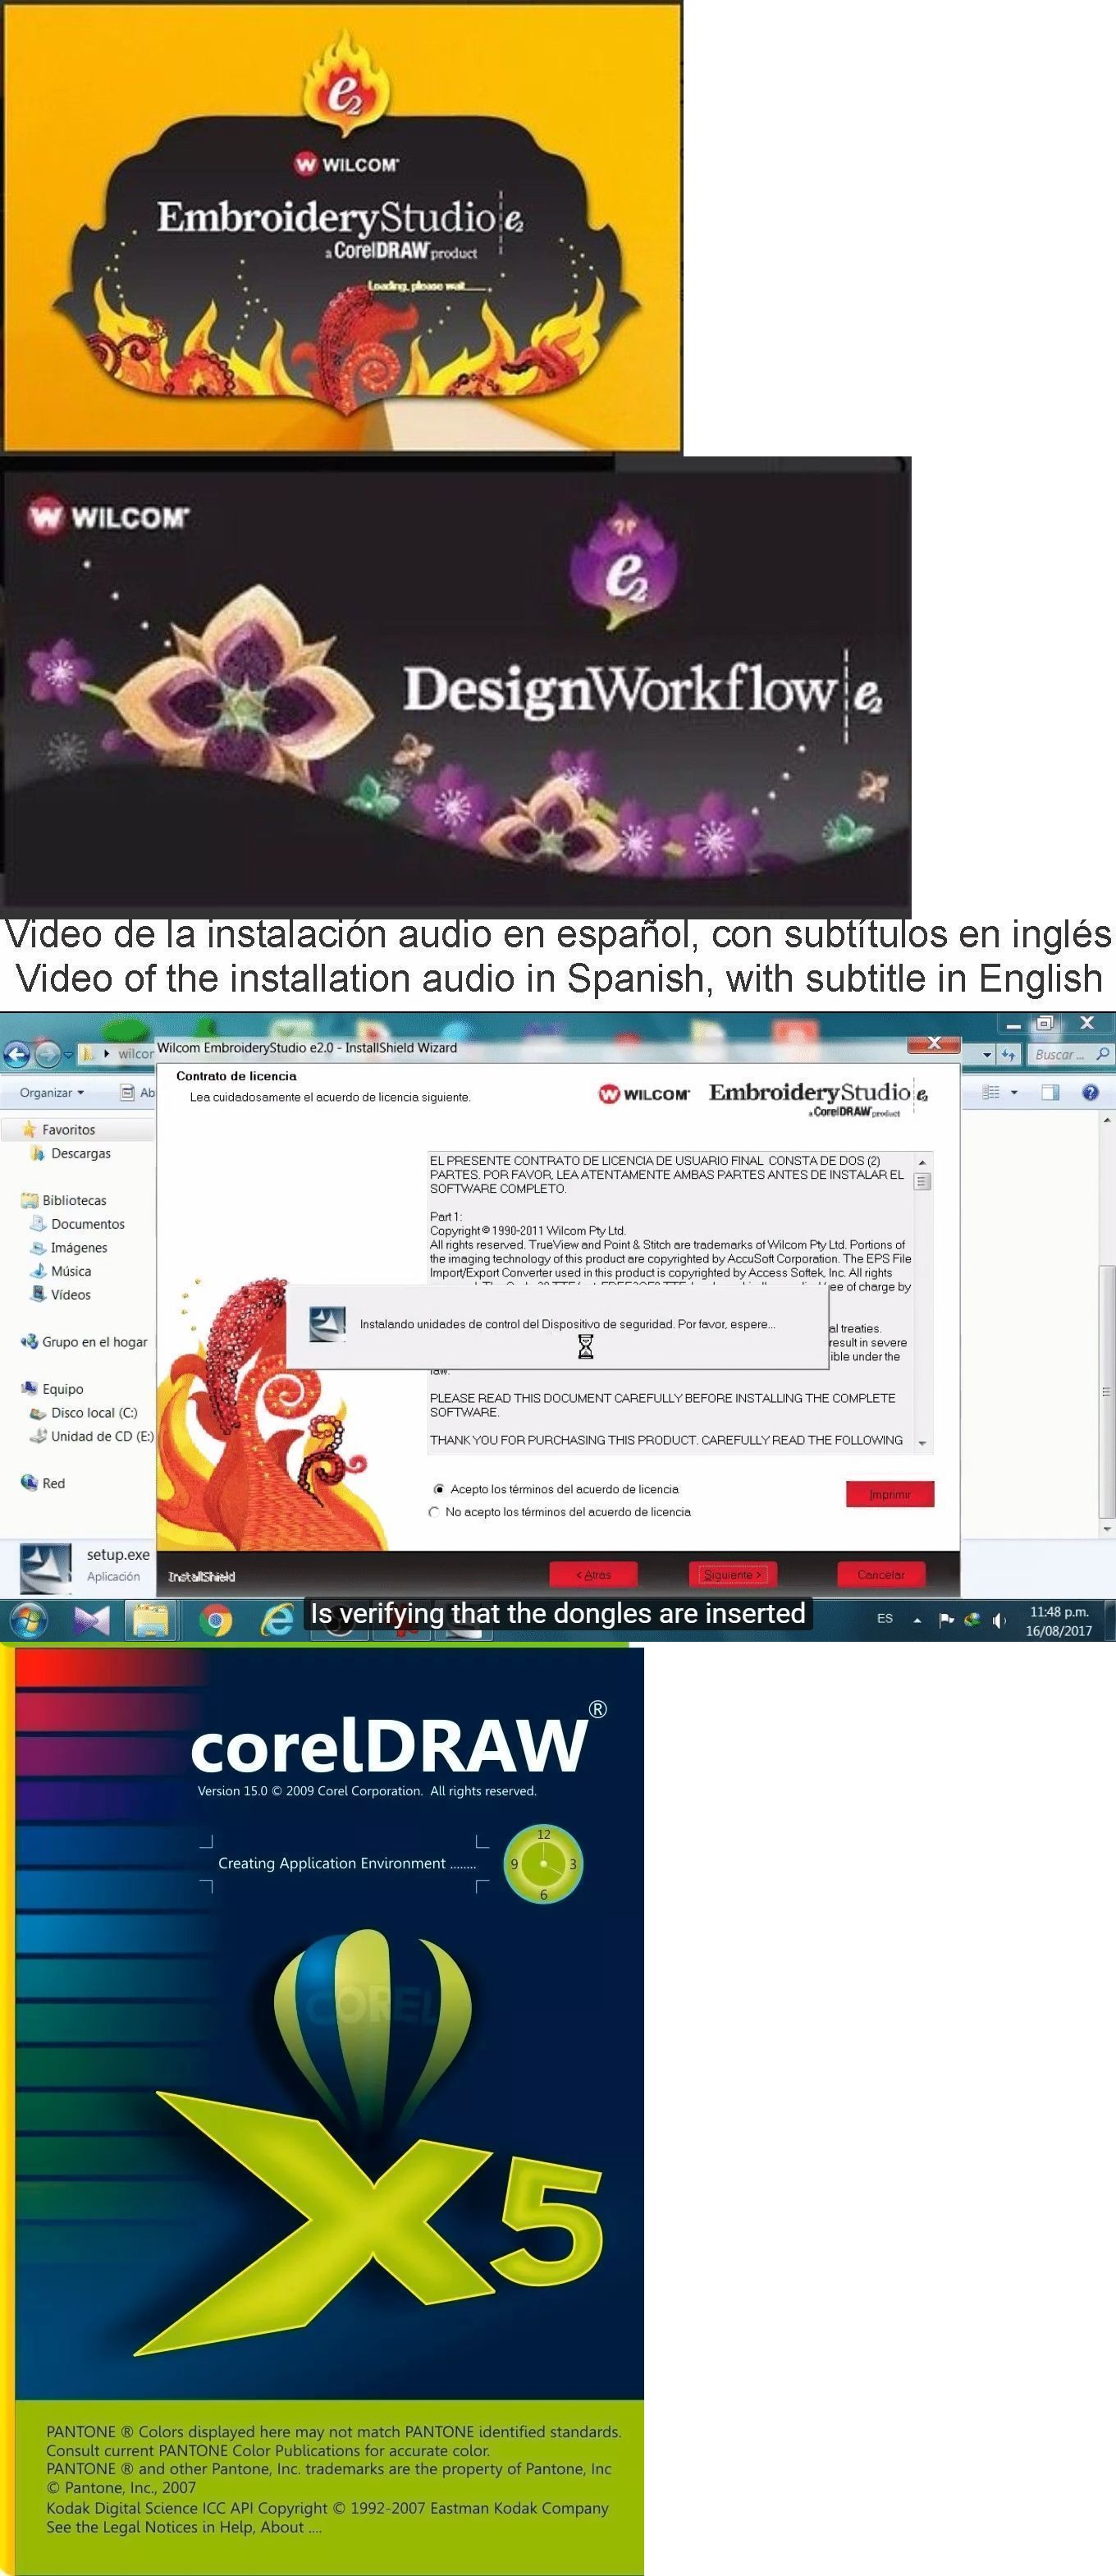 Details About Wilcom E2 Studio Corel Draw For Win 7 8 And 10 Gifts Instructions Include Wilcom Embroidery Coreldraw Digitizing Software